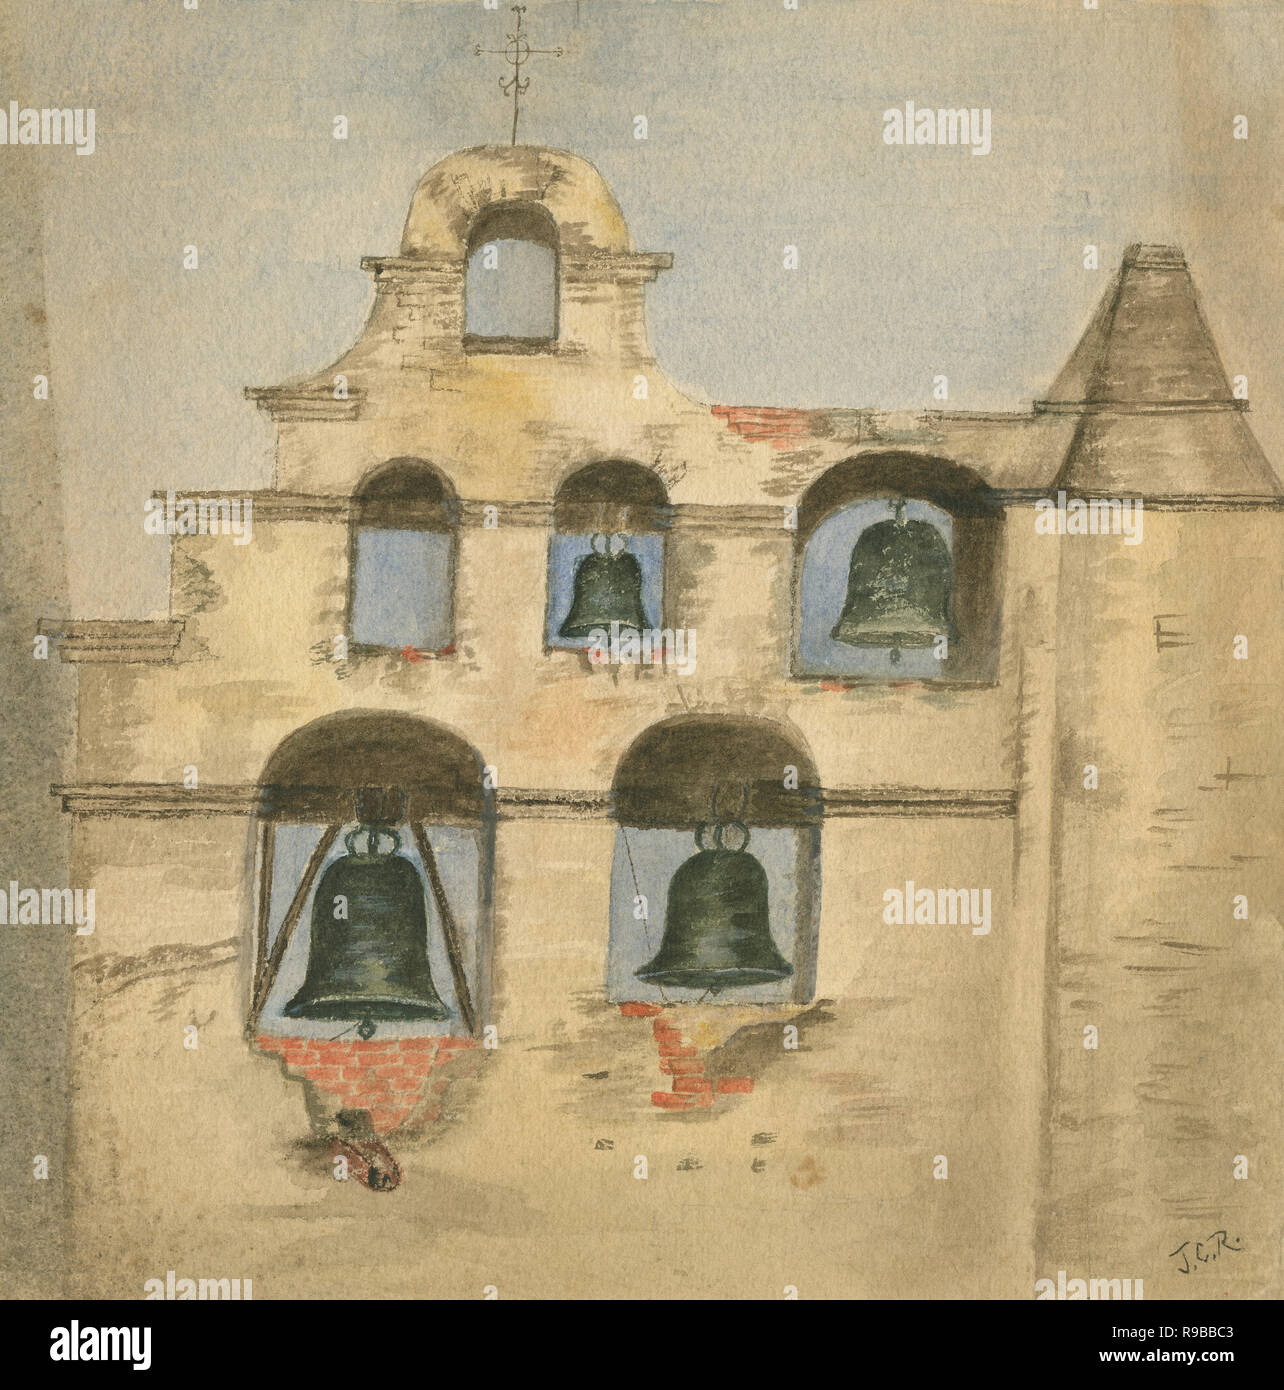 Antique c1890 watercolor painting, the bell wall at the Mission San Gabriel Arcangel. Mission San Gabriel Arcángel is a Roman Catholic mission and a historic landmark in San Gabriel, California. The settlement was founded by Spaniards of the Franciscan order in 1771. SOURCE: ORIGINAL PAINTING - Stock Image